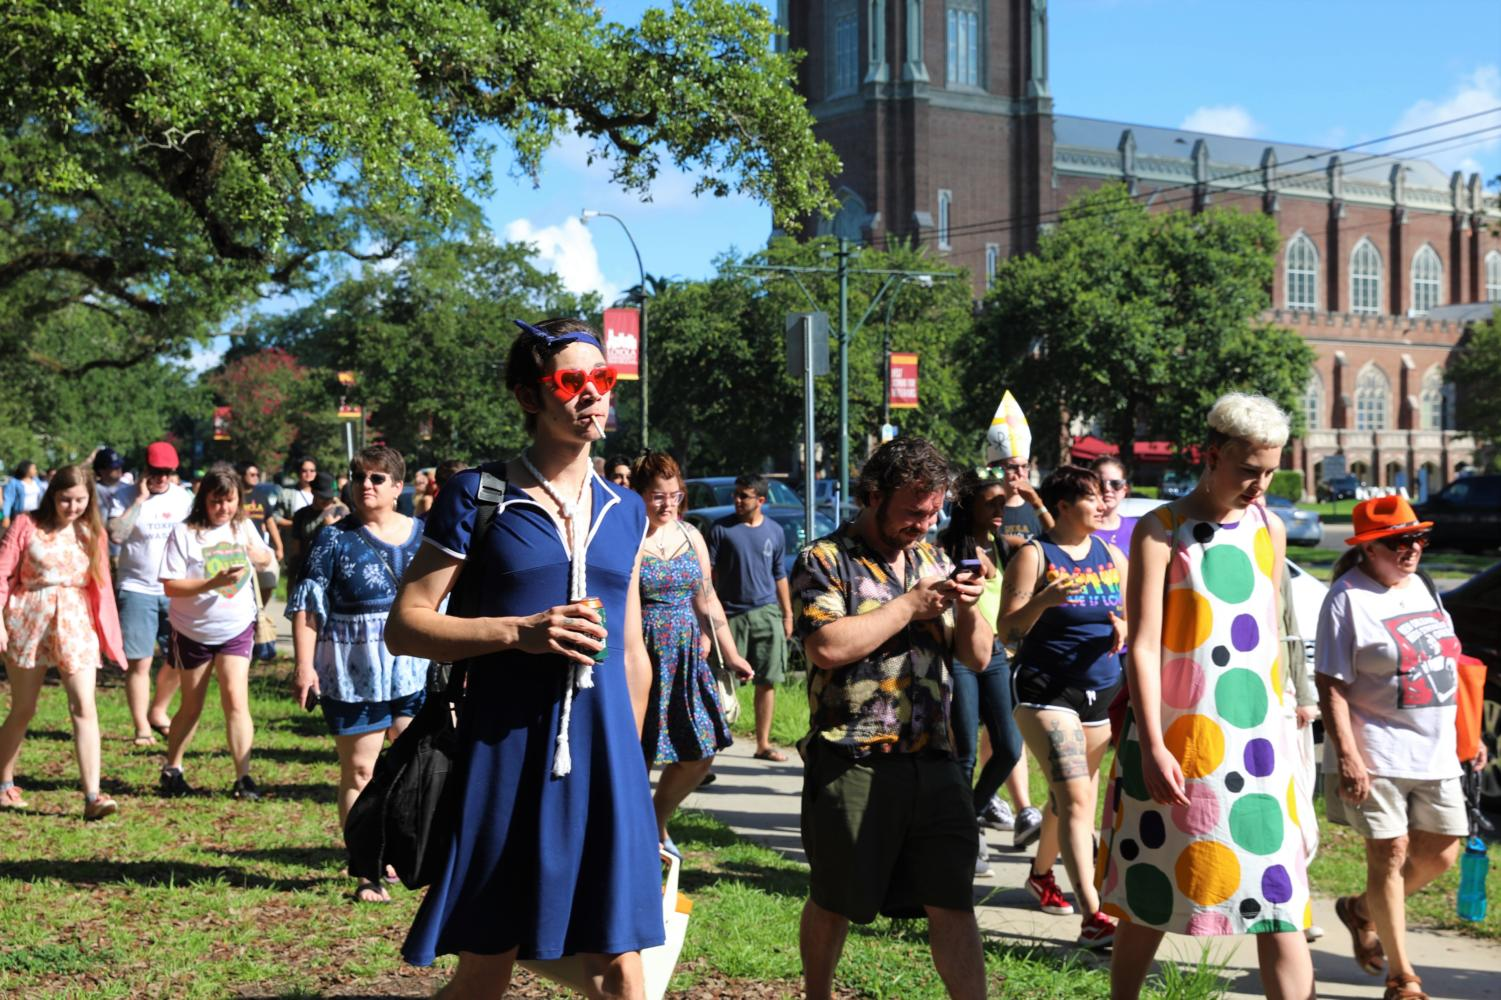 A+group+of+counter+protesters+flocking+to+the+Westboro+Baptist+Church+members.+Photo+credit%3A+Catie+Sanders